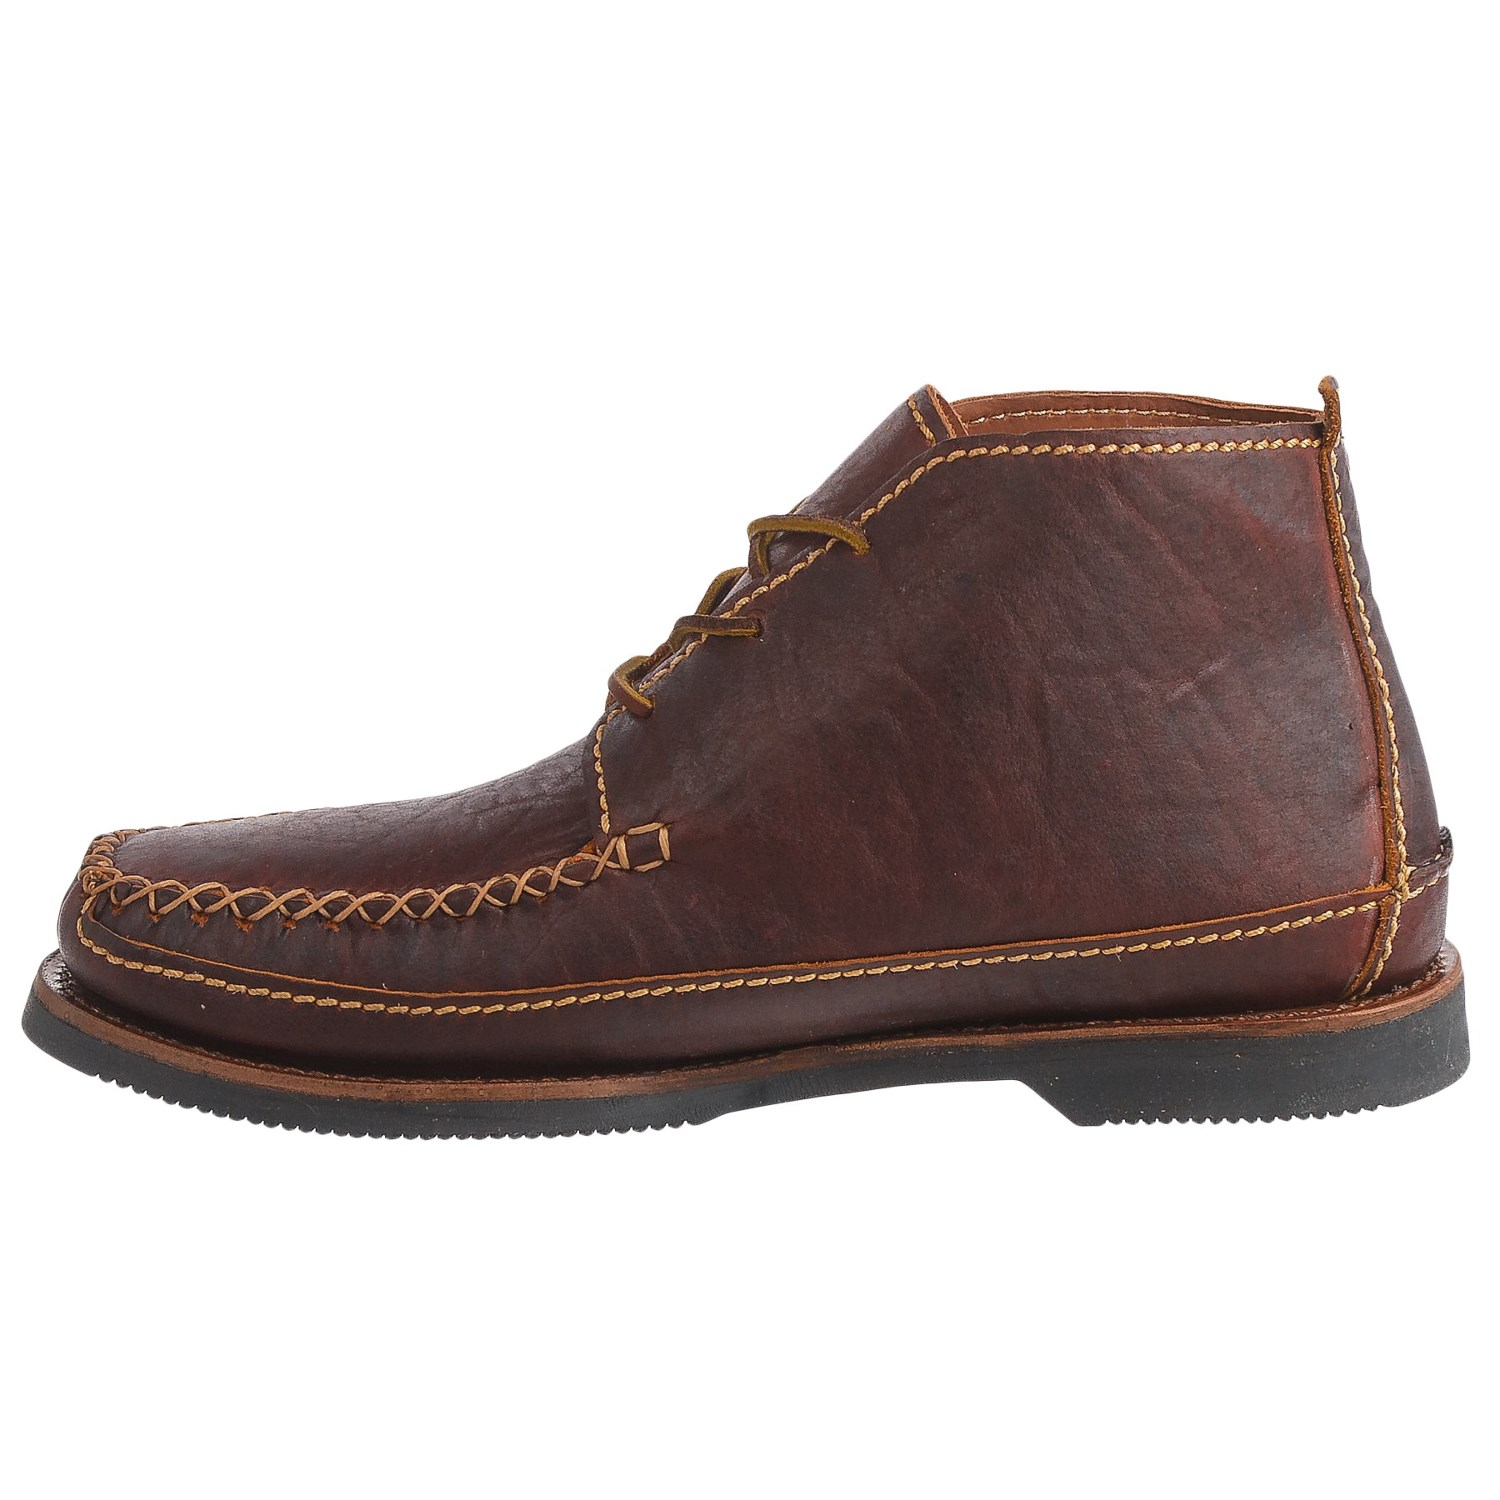 chippewa american bison leather chukka boots for